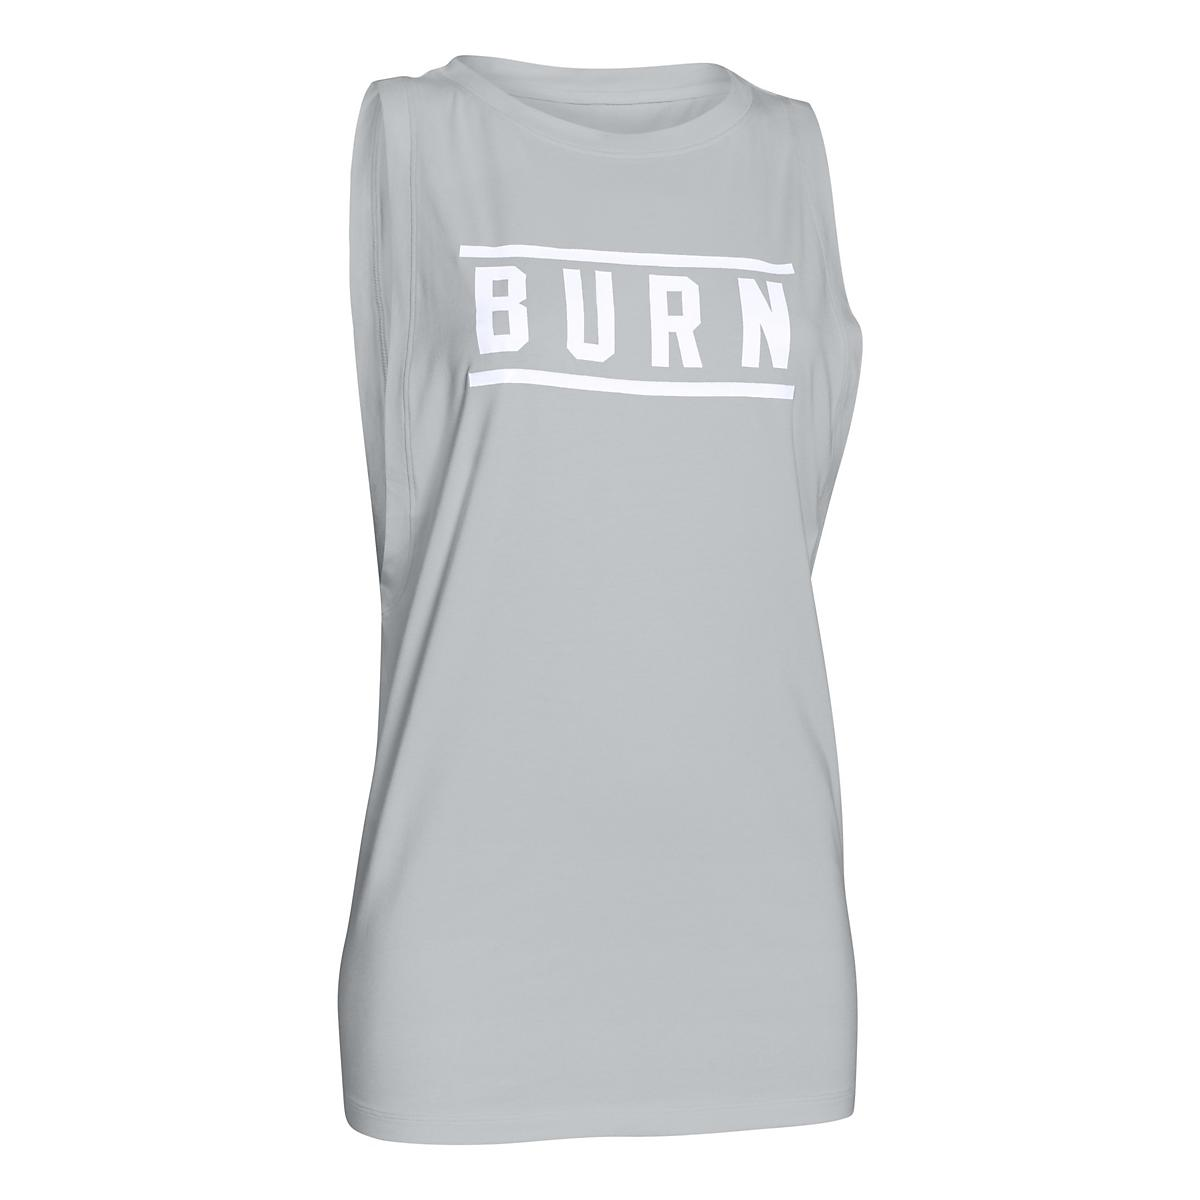 Women's Under Armour�Studio Burn Muscle Tank